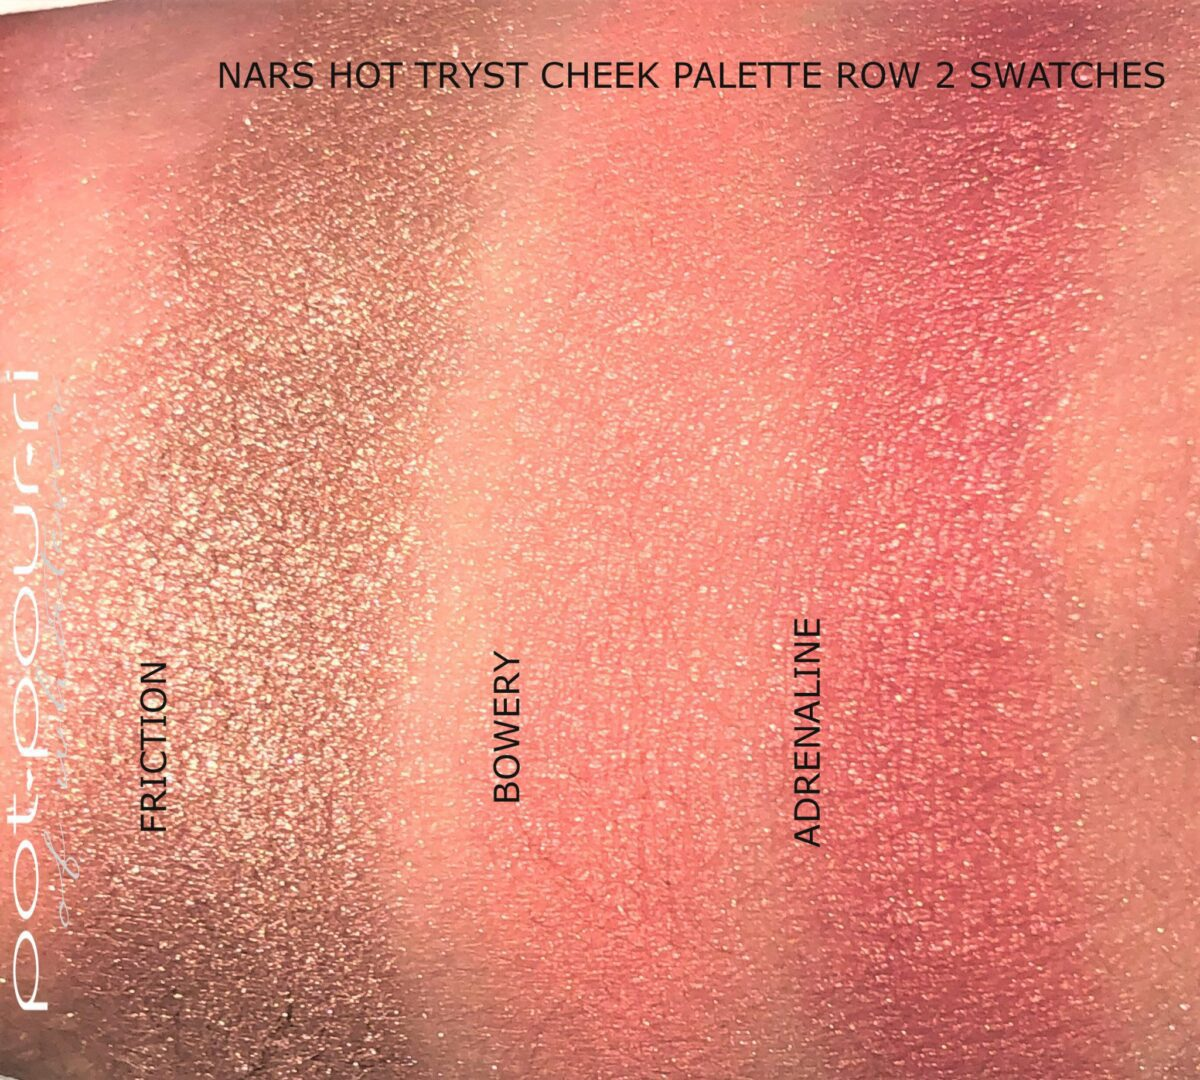 HOT TRYST PALETTE SWATCHES